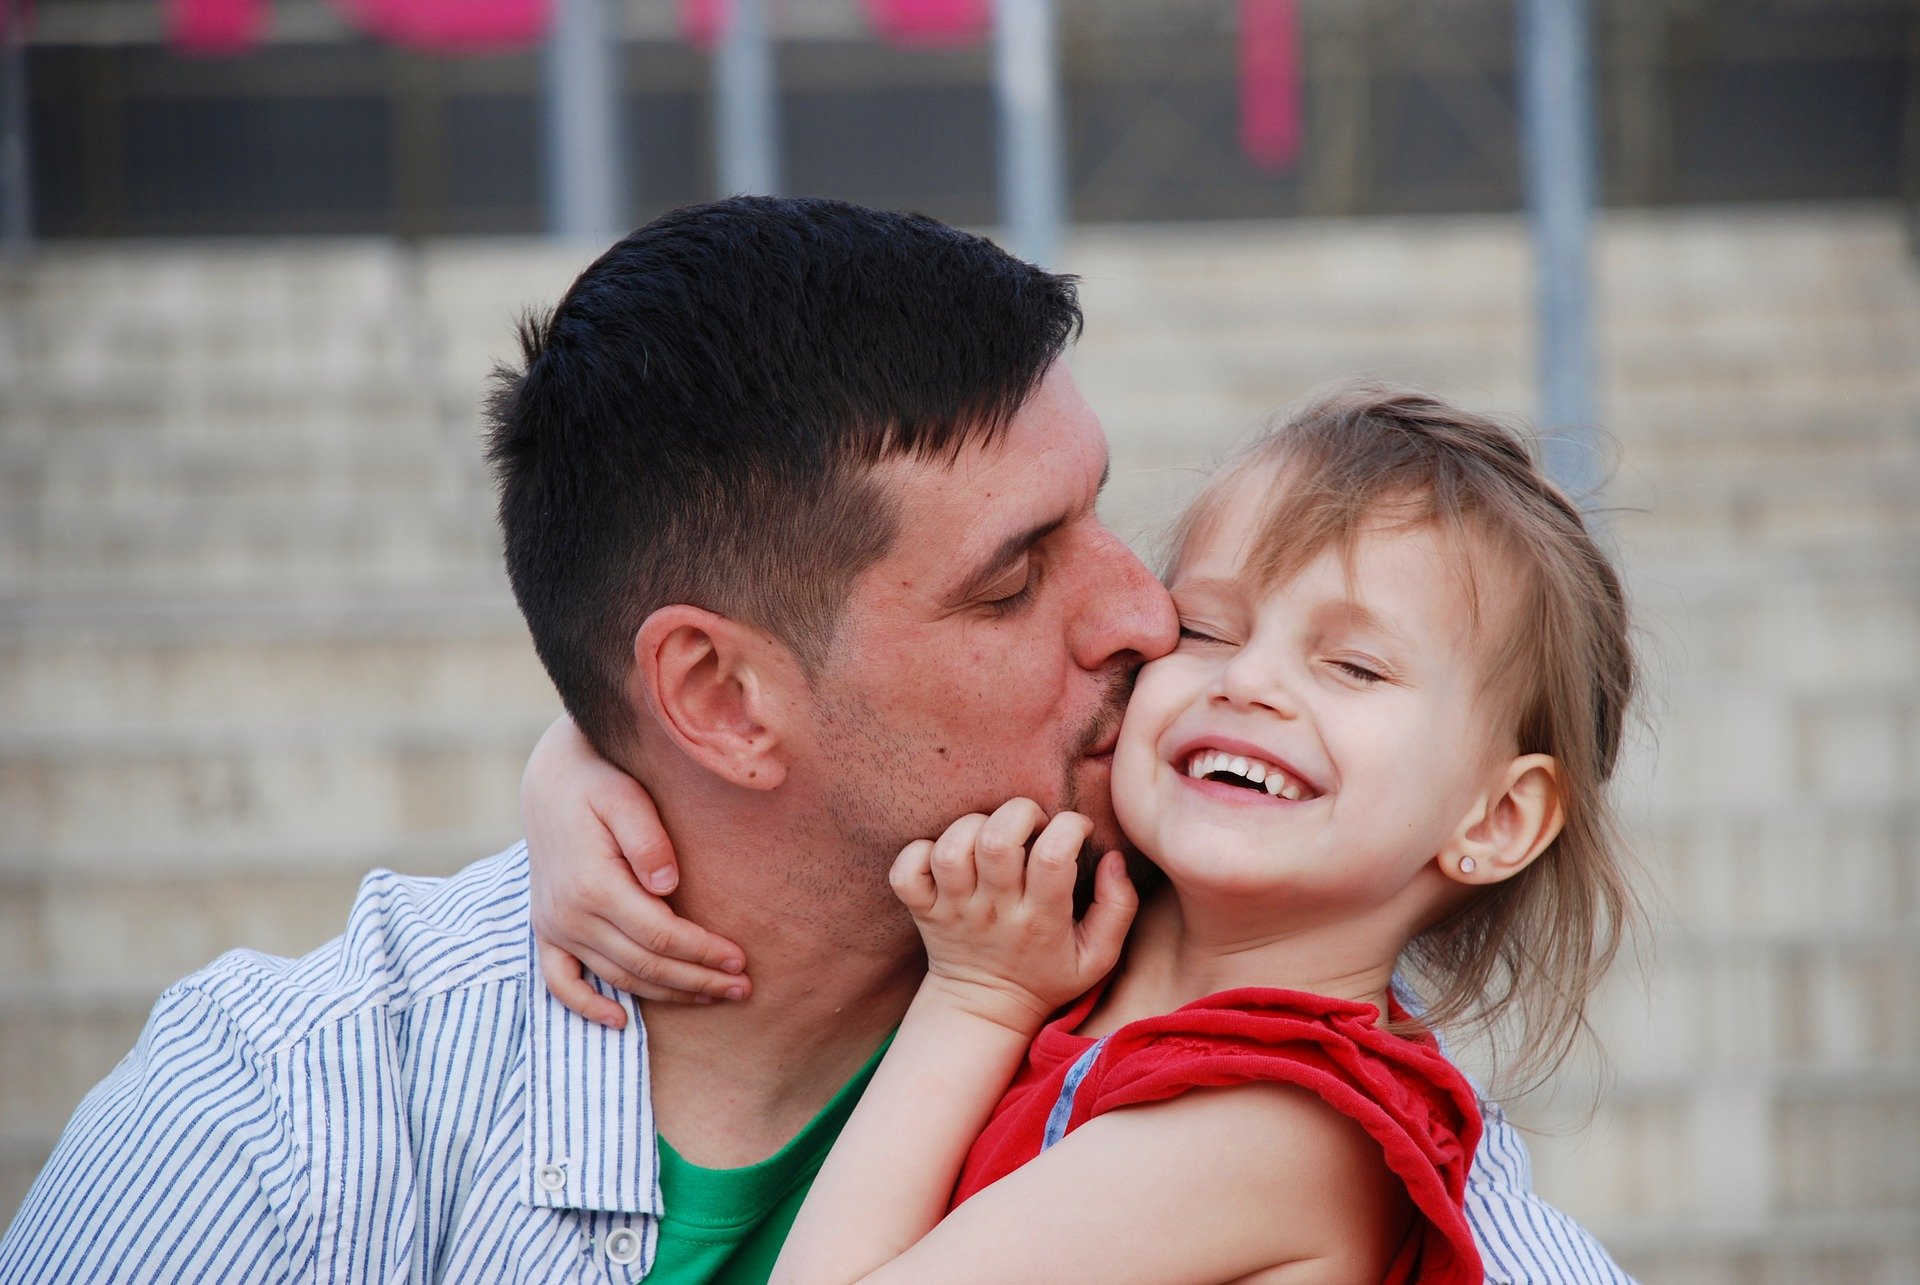 Read more about the article How to Boost Confidence in Kids as an Emotionally Engaged Dad